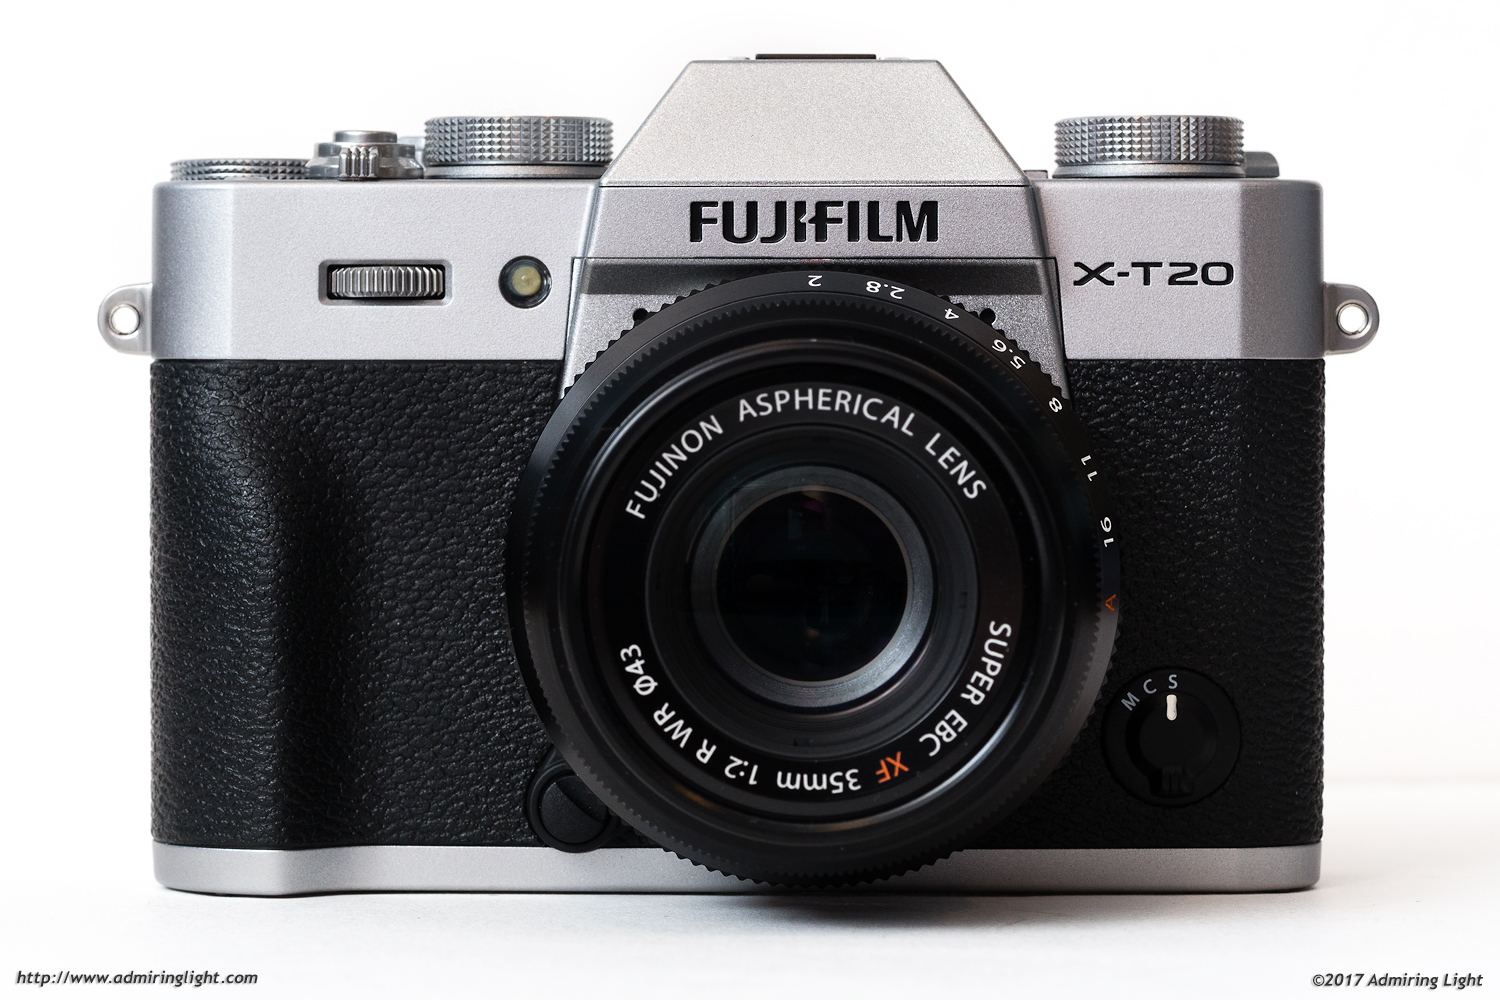 The X-T20 is a small, retro styled mirrorless camera